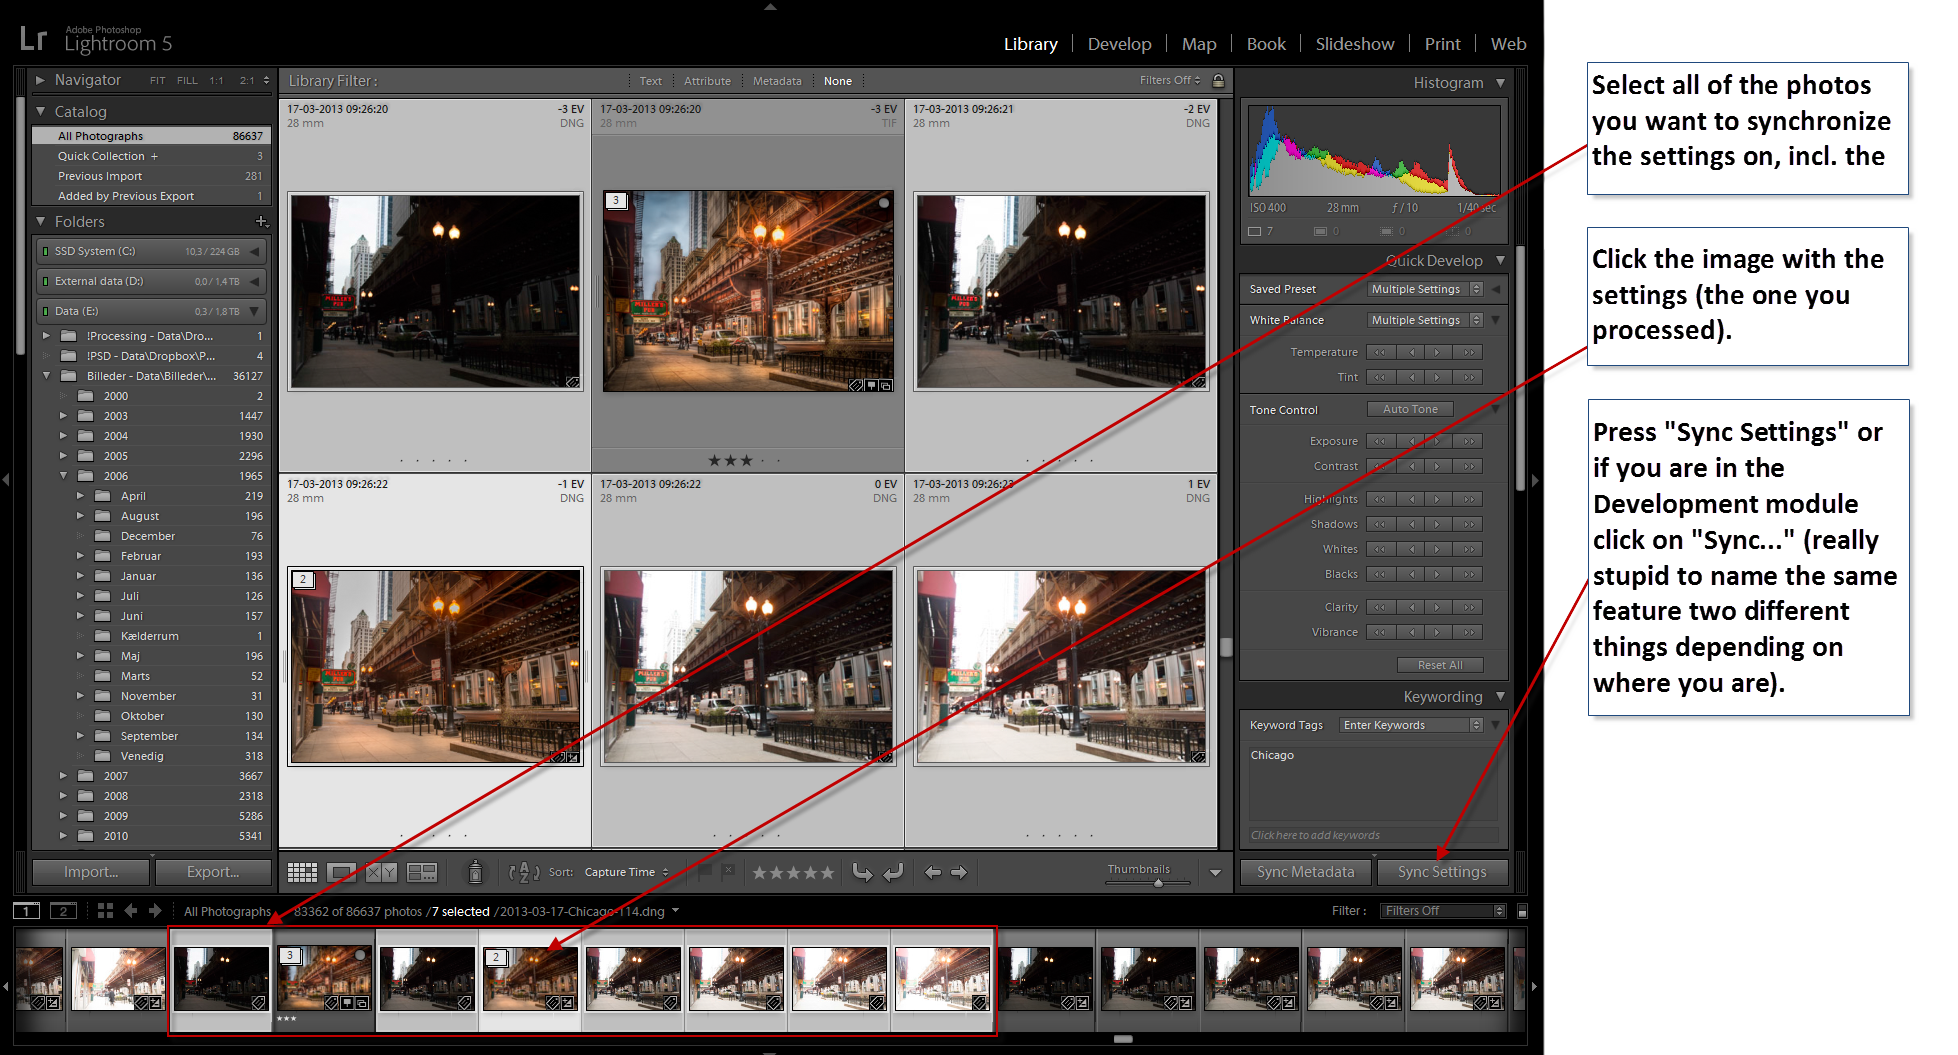 Chicago - Syncronize settings in lightroom